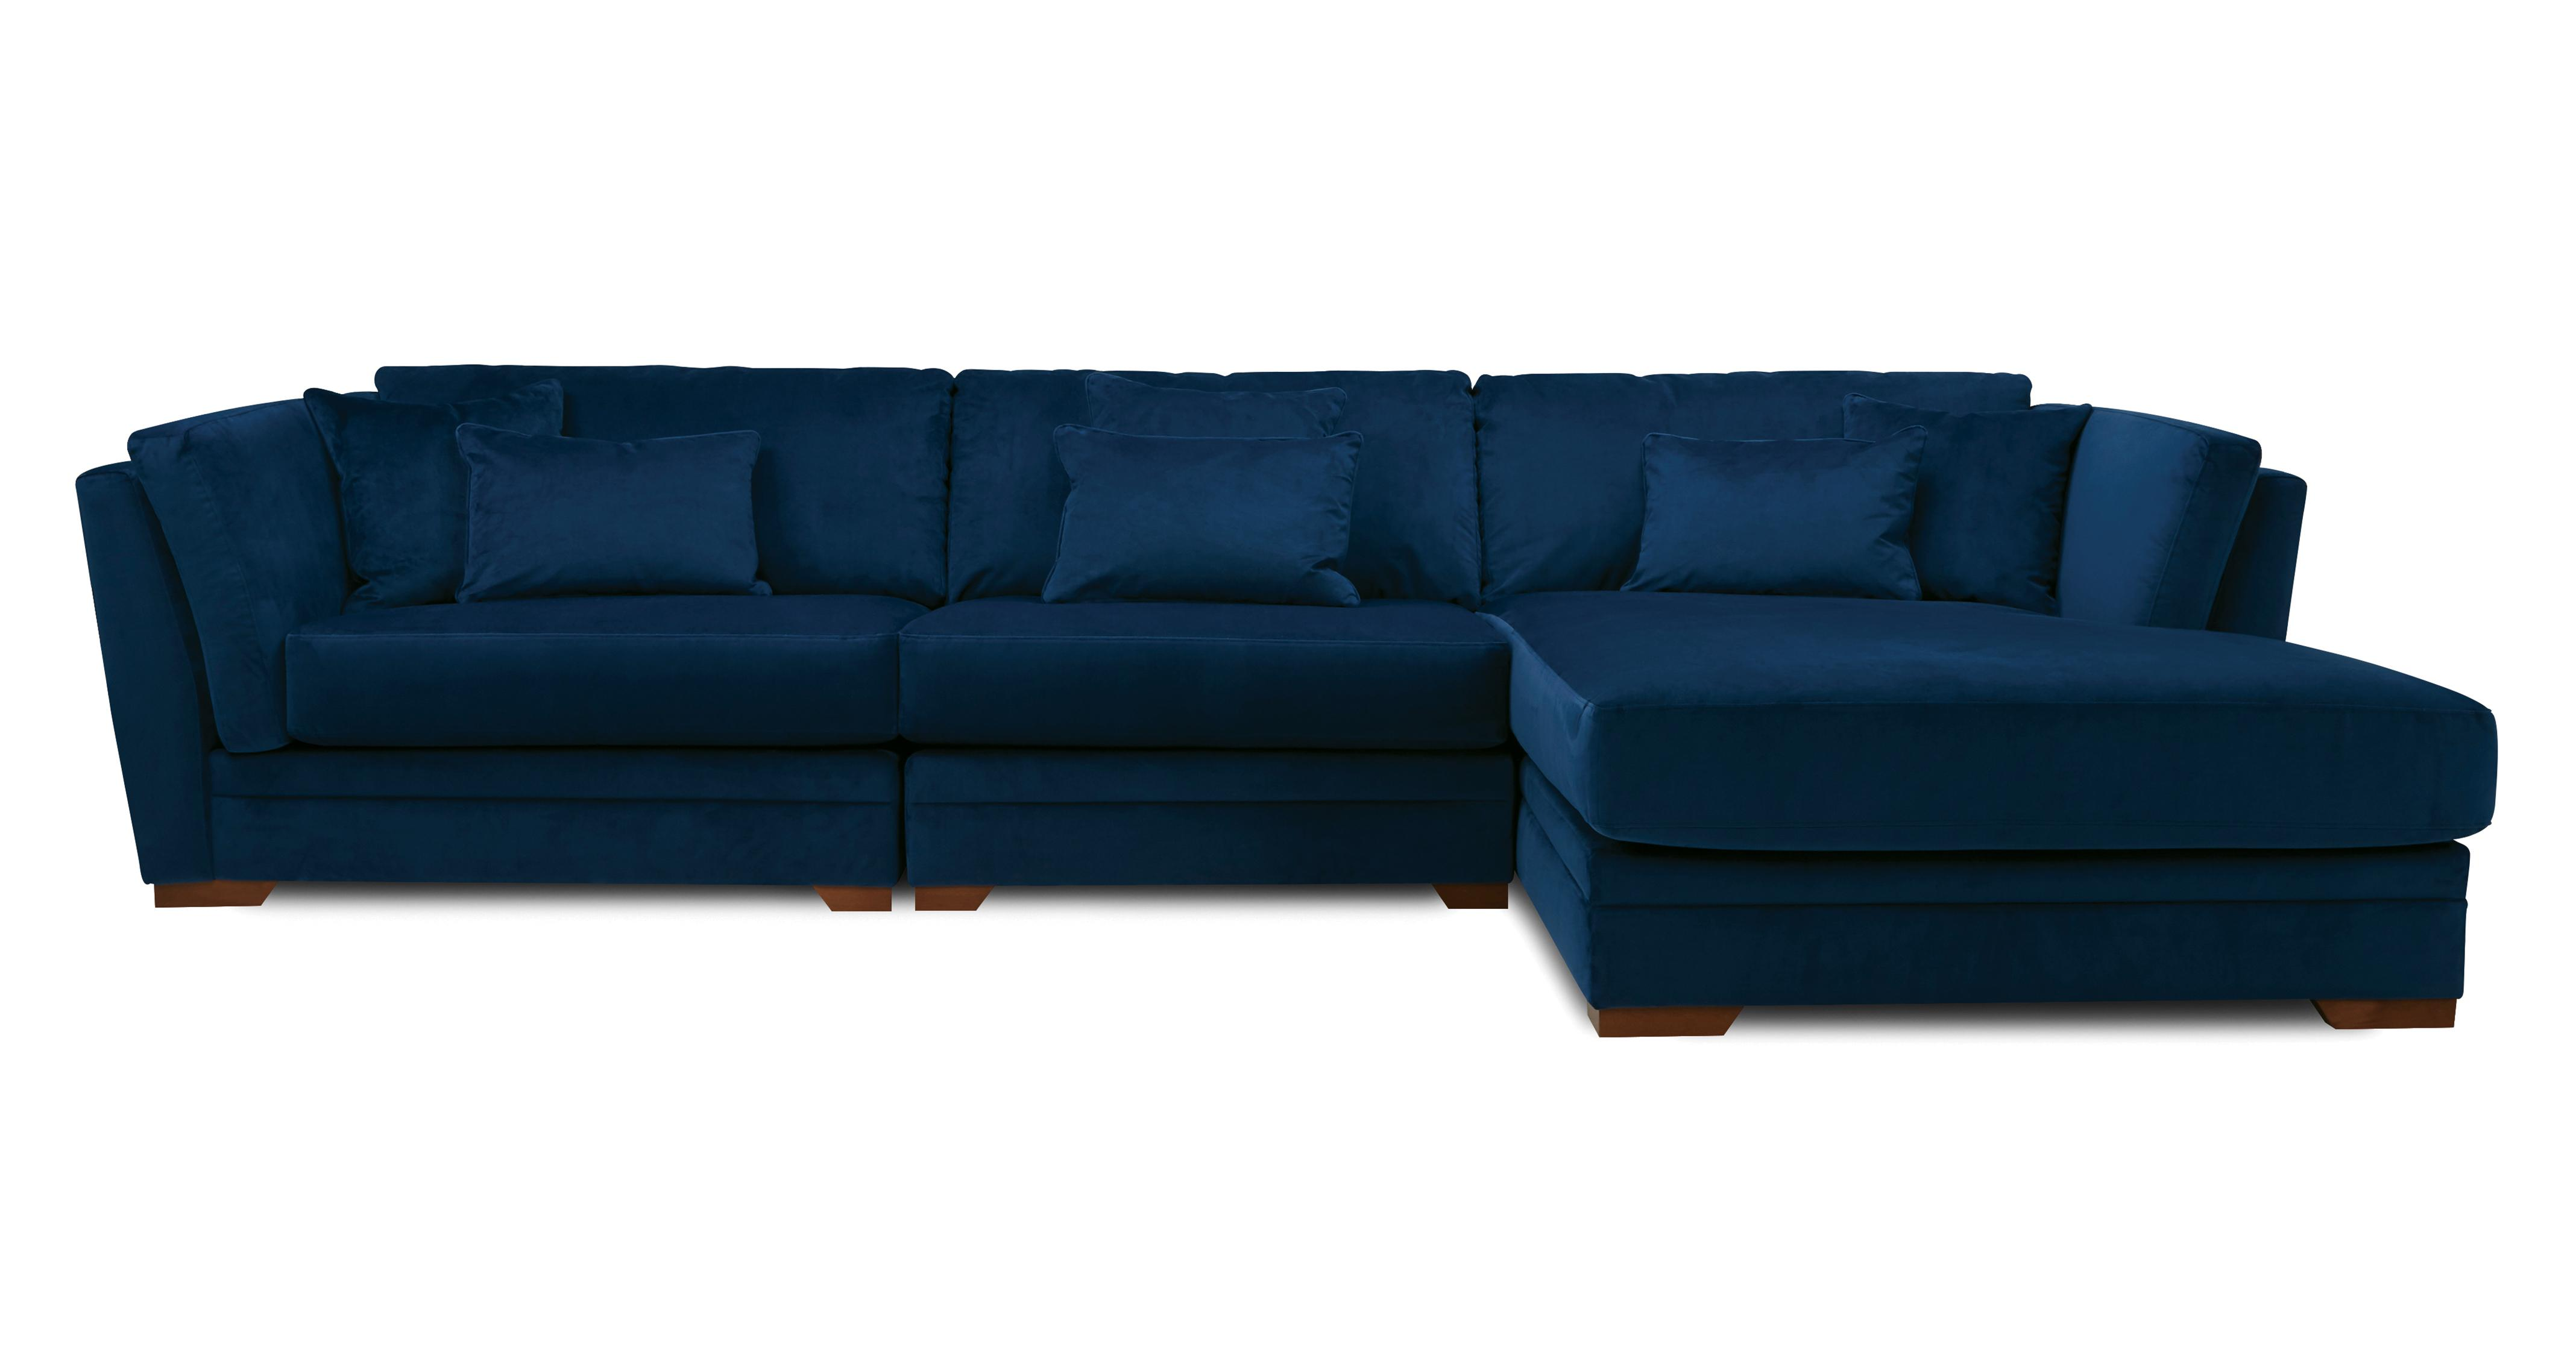 Long Beach Right Hand Facing Large Chaise Sofa Long Beach Velvet | DFS